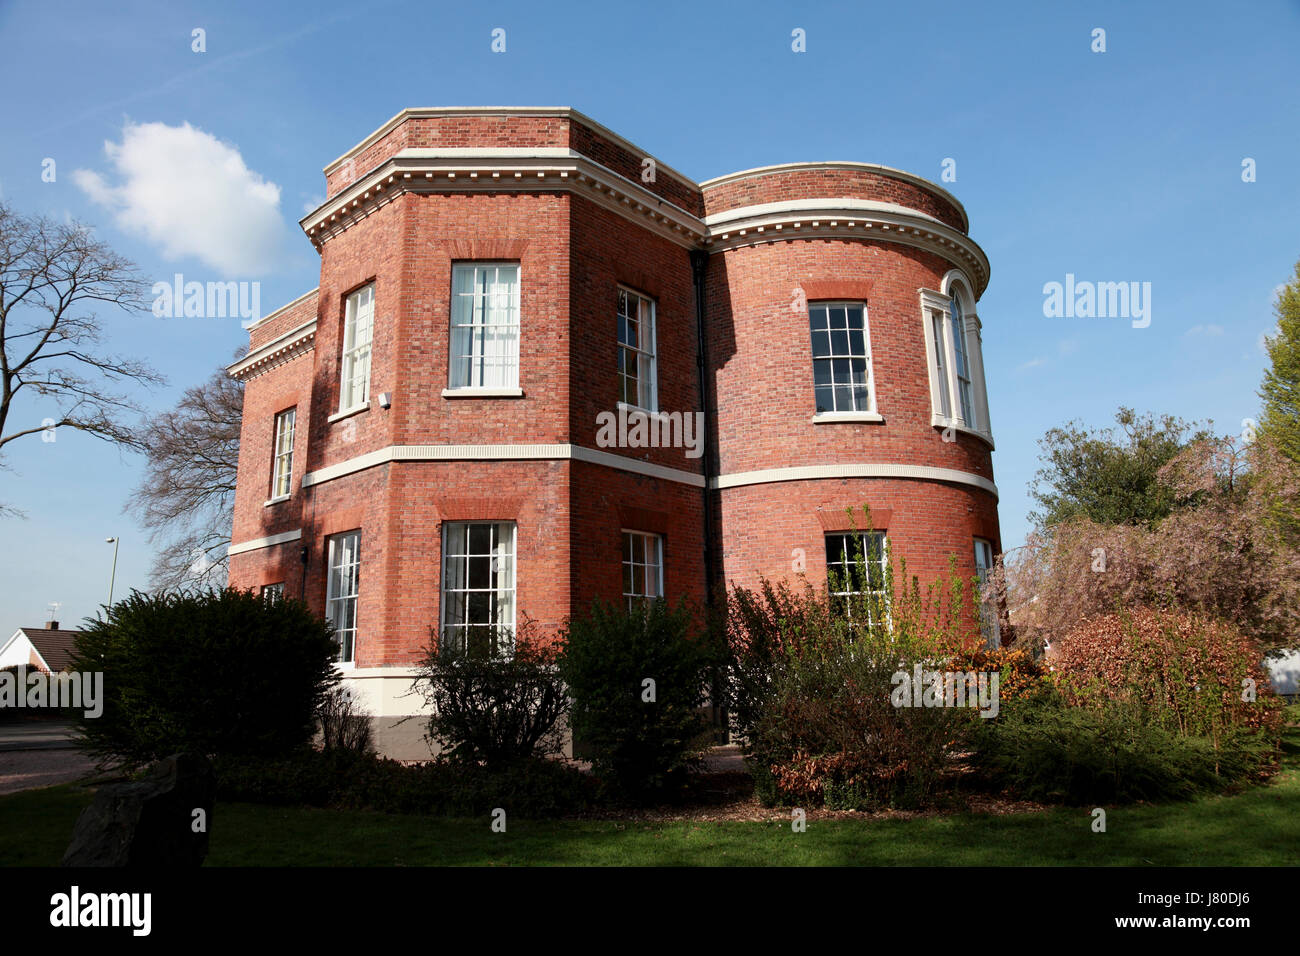 The Grove, a Grade II listed building, built about 1770, now Grove (sixth form) College, in Market Drayton, Shropshire - Stock Image